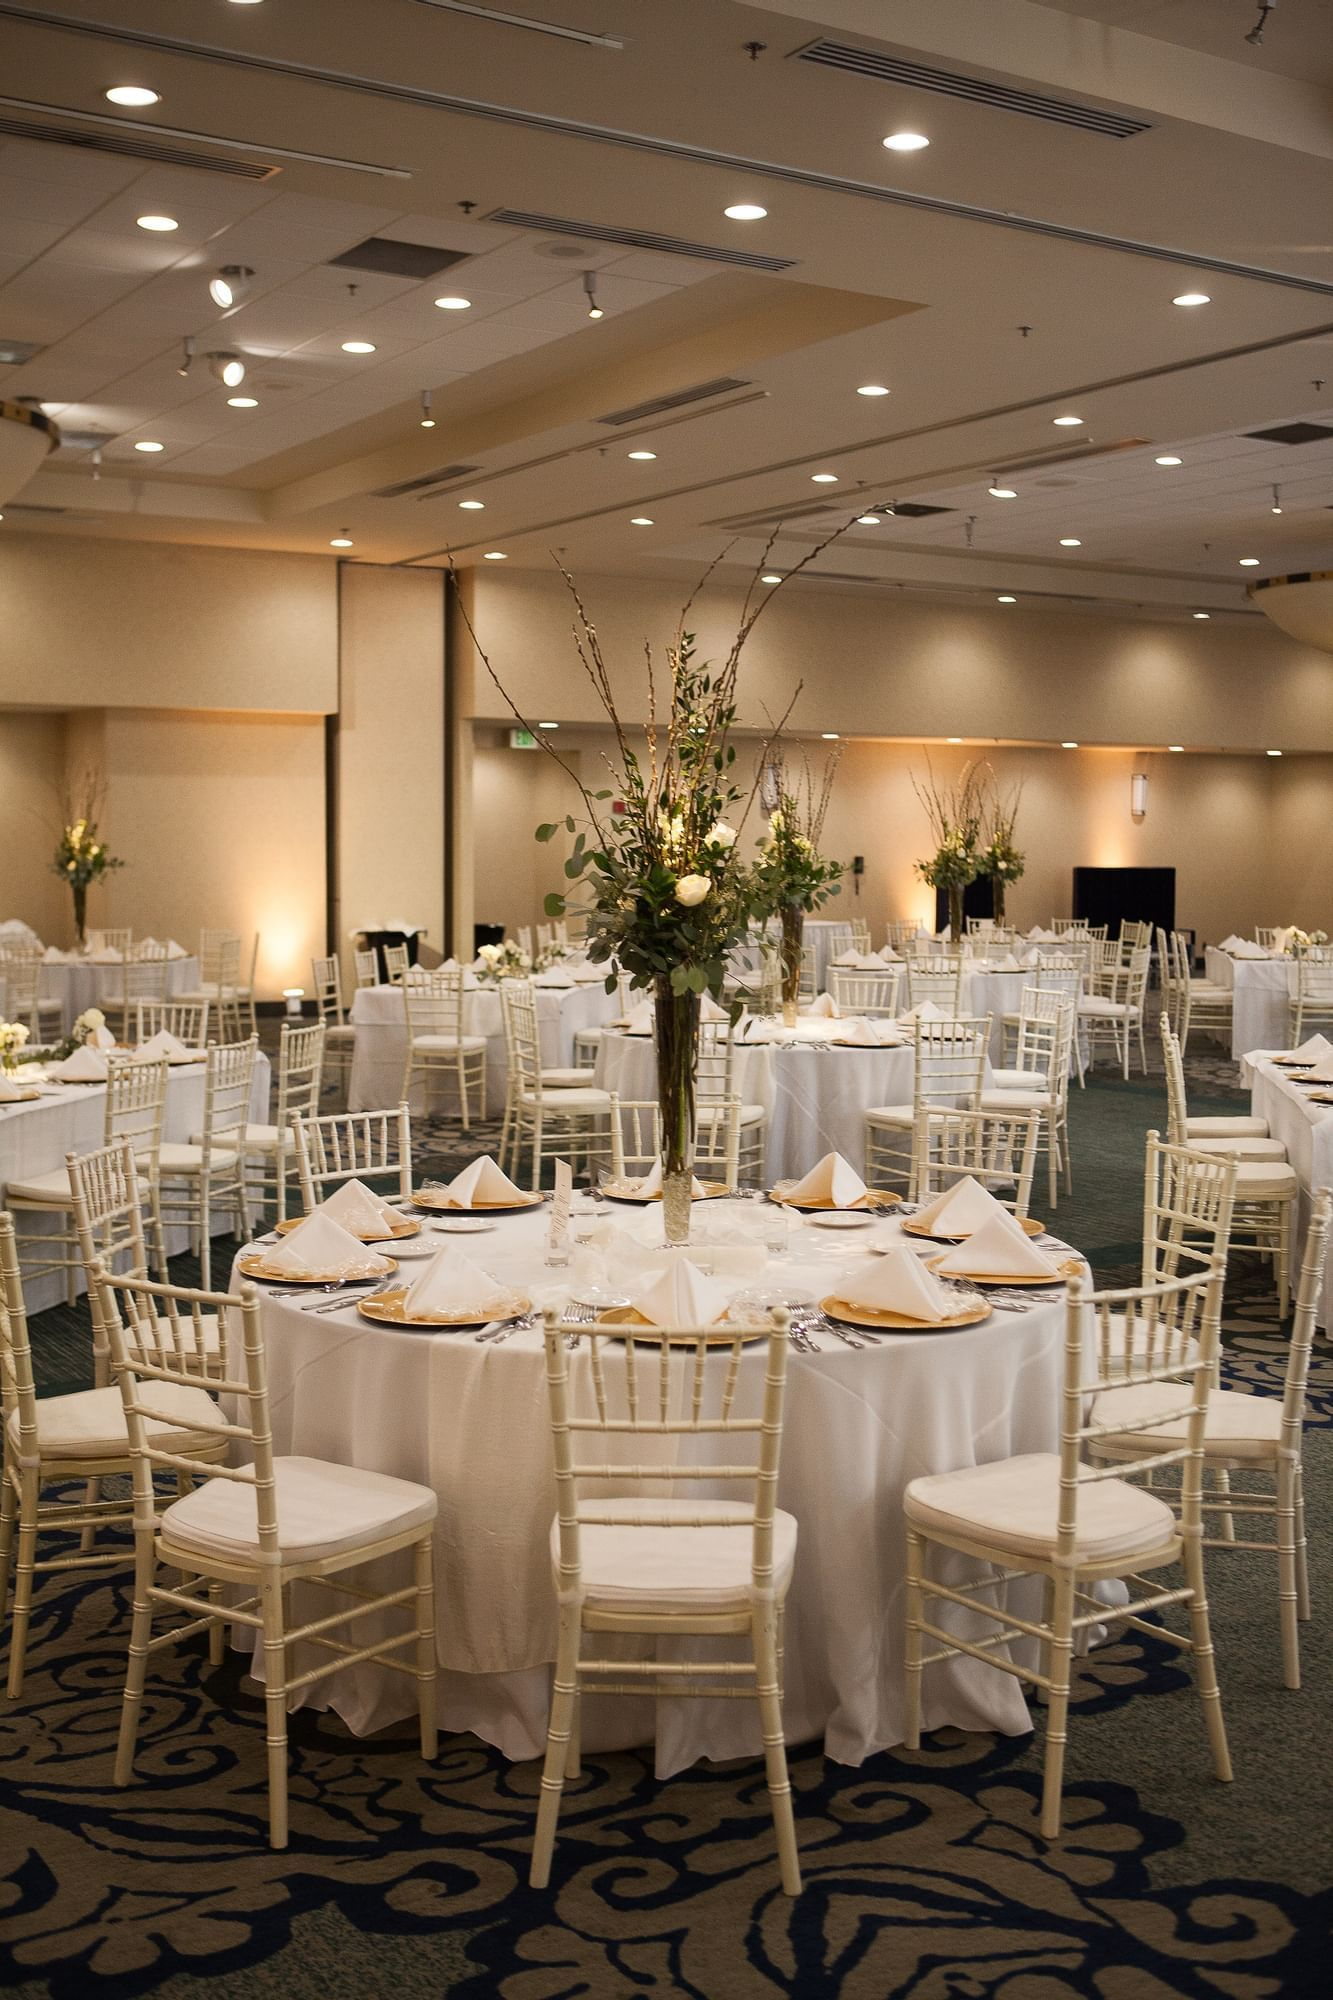 tables and chairs in a ballroom